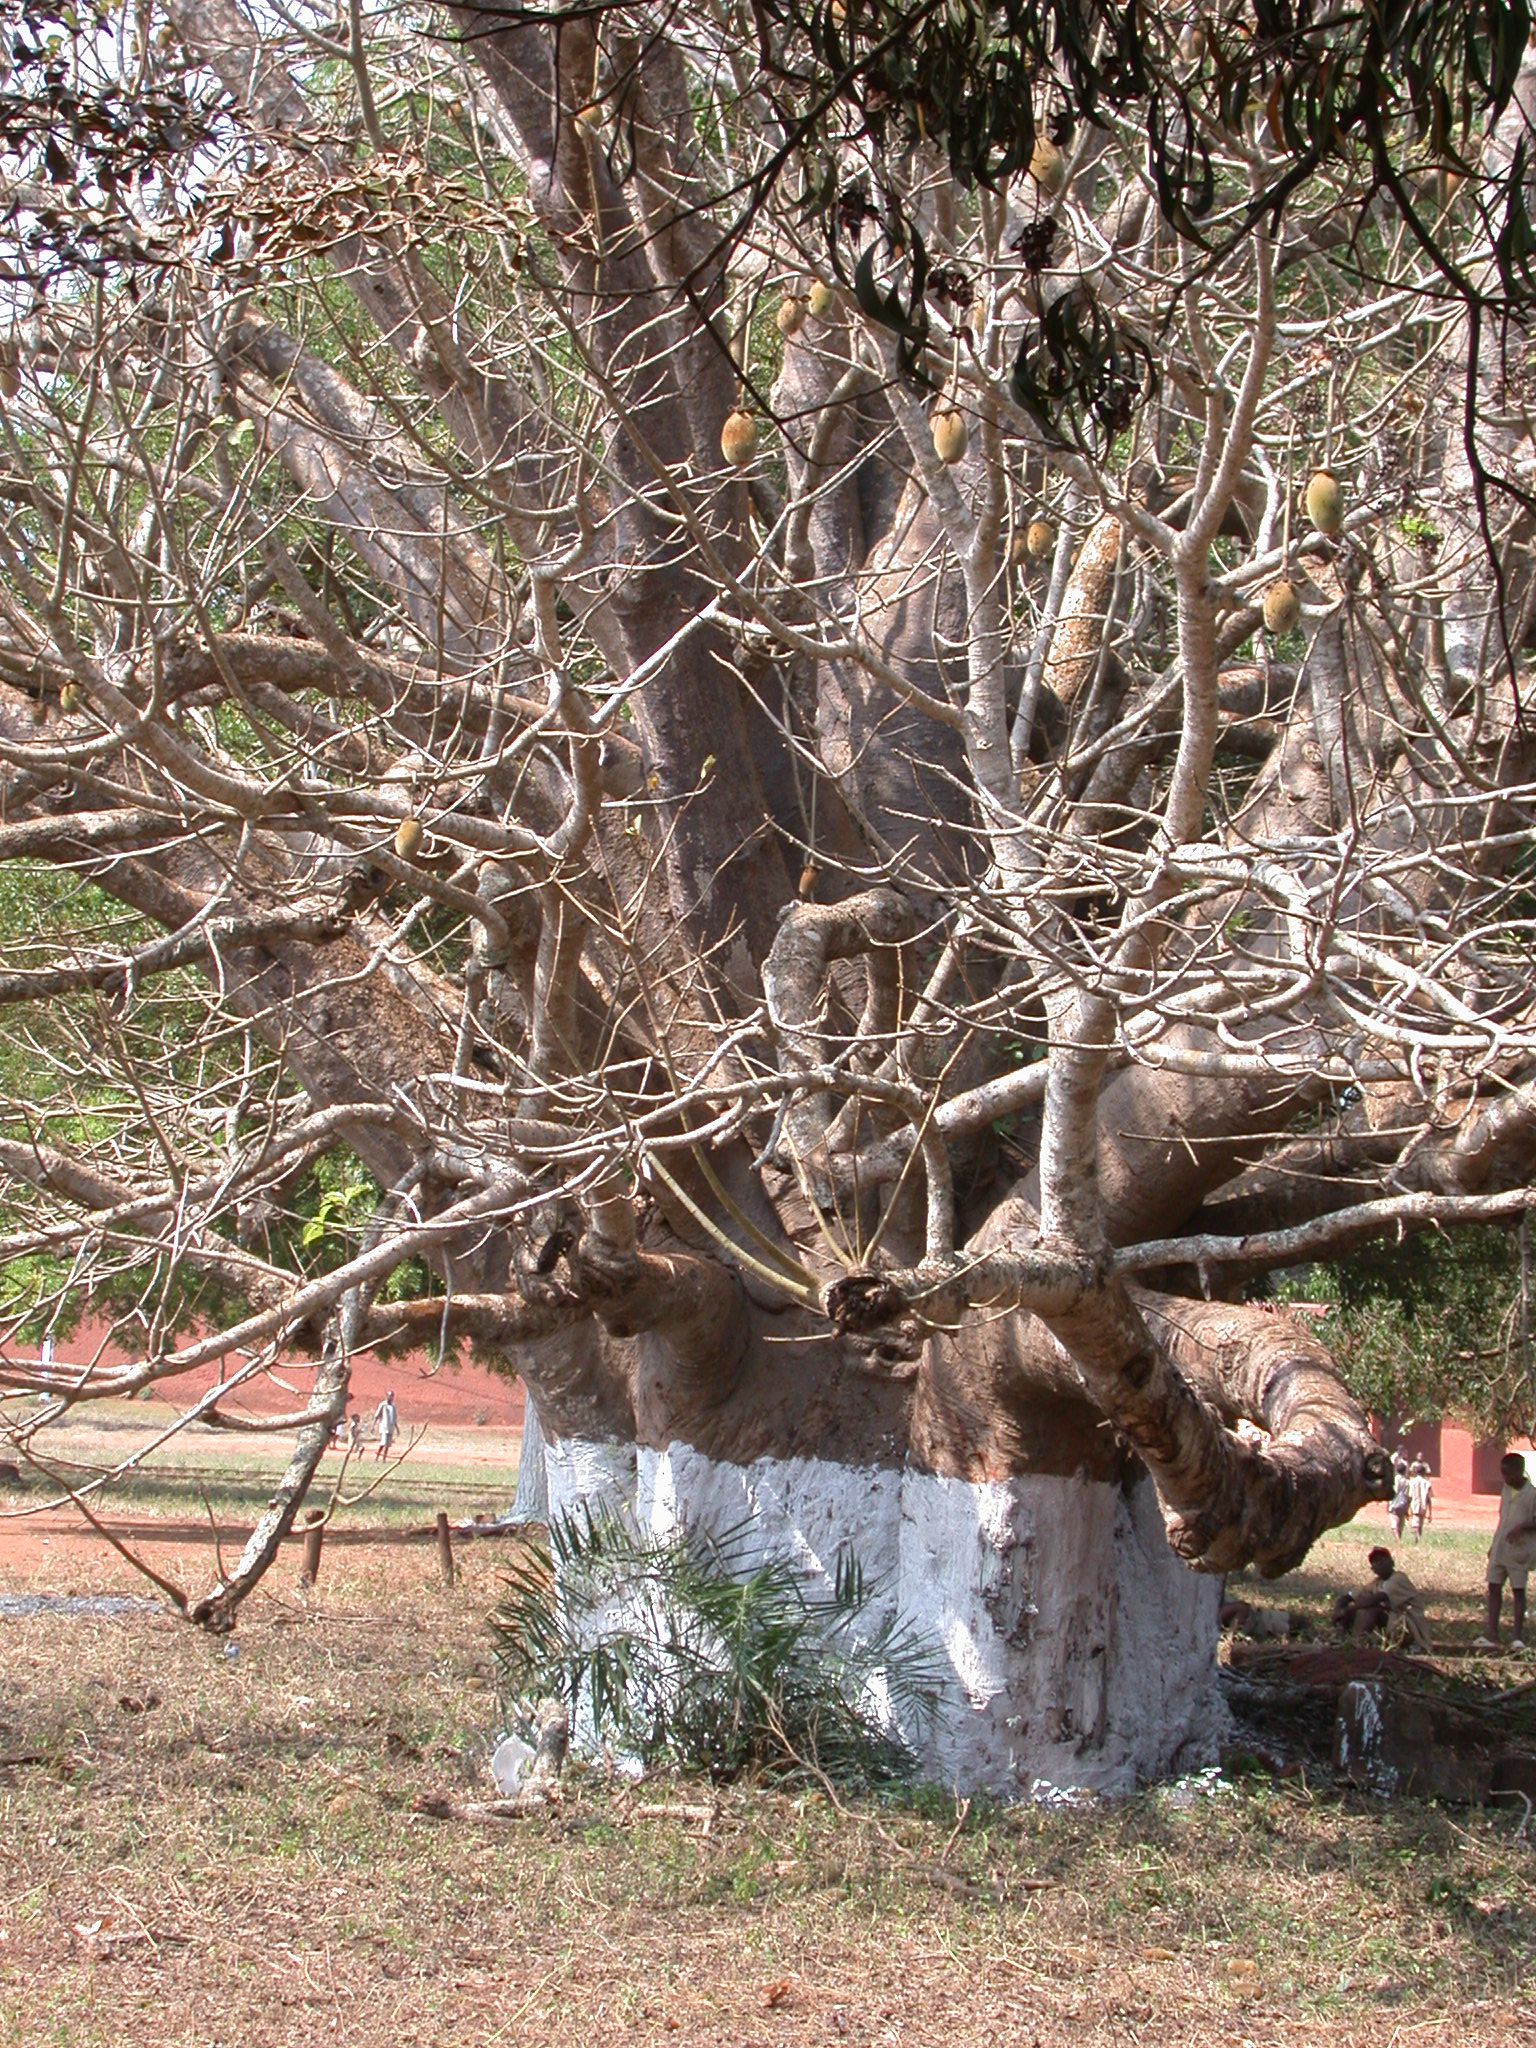 Large Old Tree in Front of Abomey History Museum in Main Complex of Palaces, Abomey, Benin